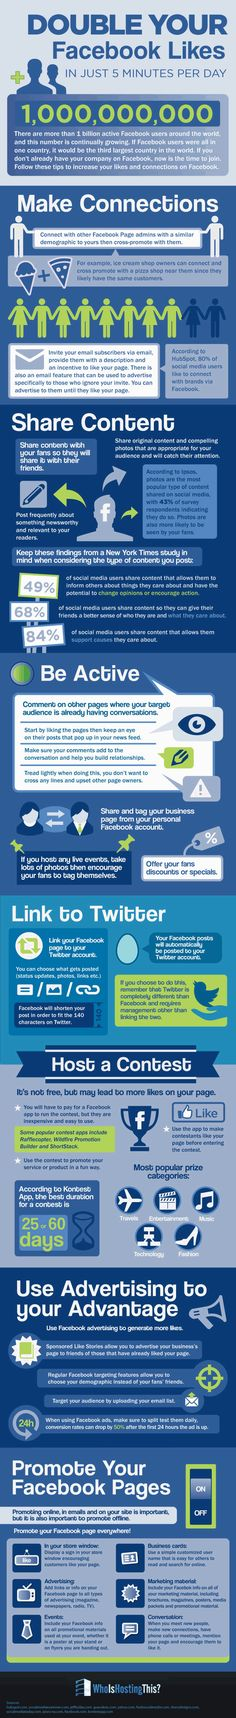 Infographic of the Week: How 5 Minutes a Day Can Help you Double your Facebook Likes! -